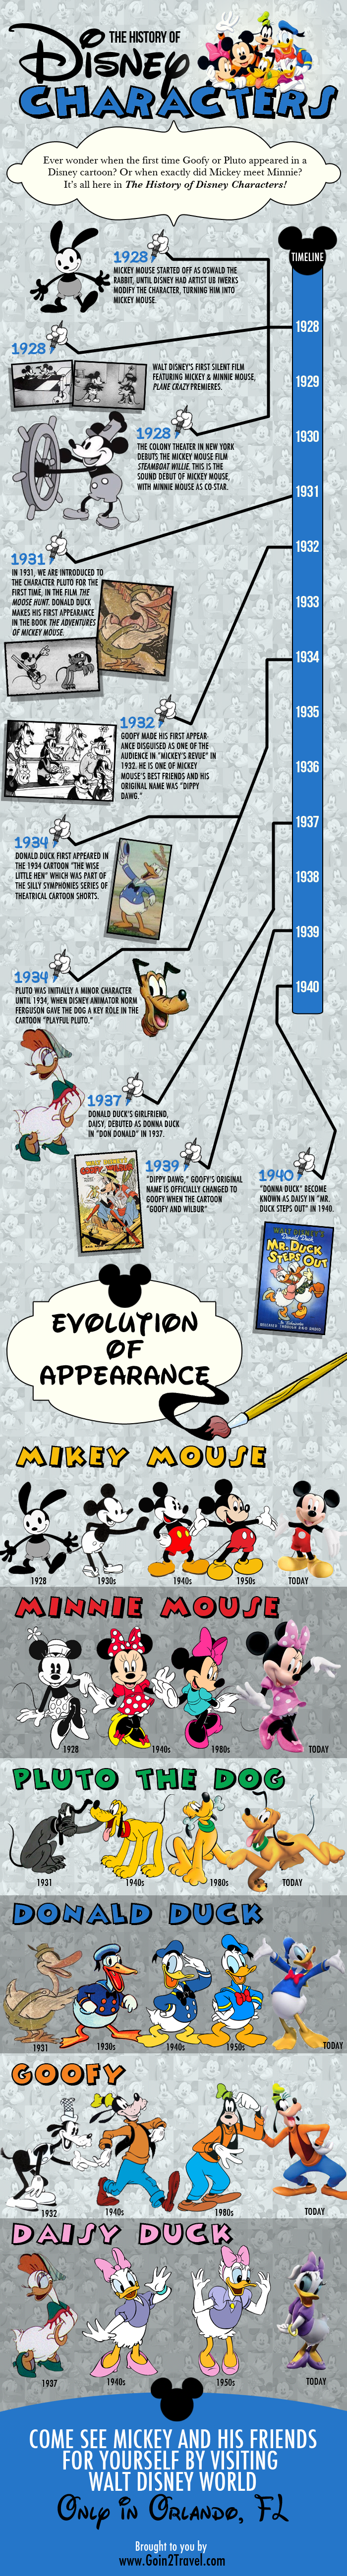 A Visual History of Disney Characters